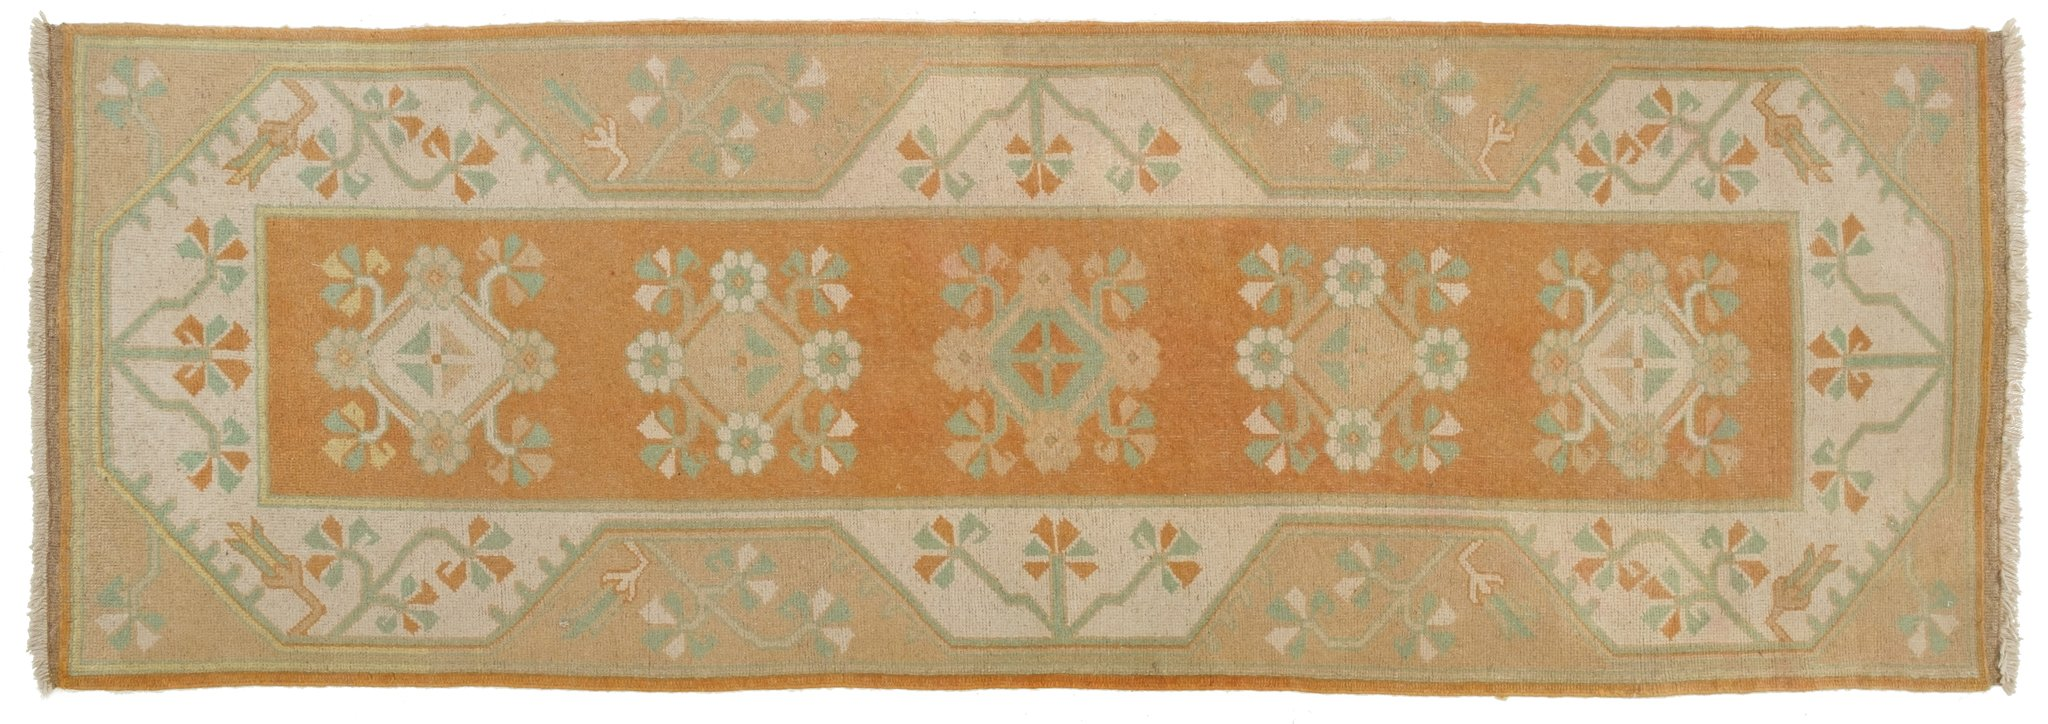 Vintage Turkish Runner Rug Perla